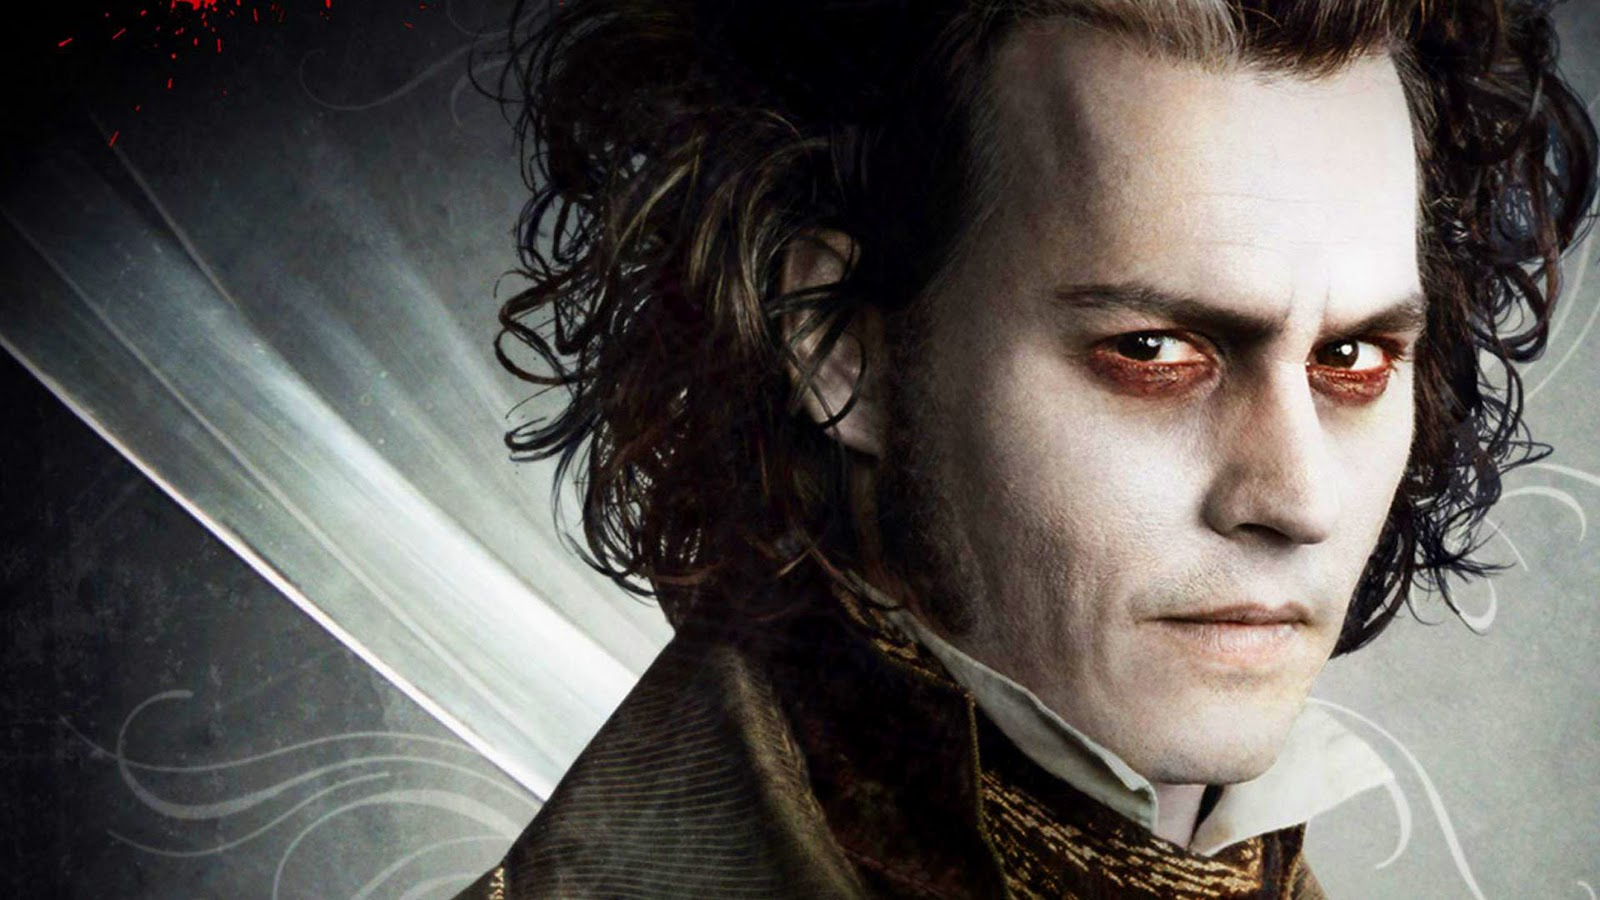 http://1.bp.blogspot.com/-WqWGruf0A70/TtcKmNycBmI/AAAAAAAAAgQ/HowUOzOvn1w/s1600/Johnny-Depp-pictures-desktop-Wallpapers-HD-photo-images-13.jpg